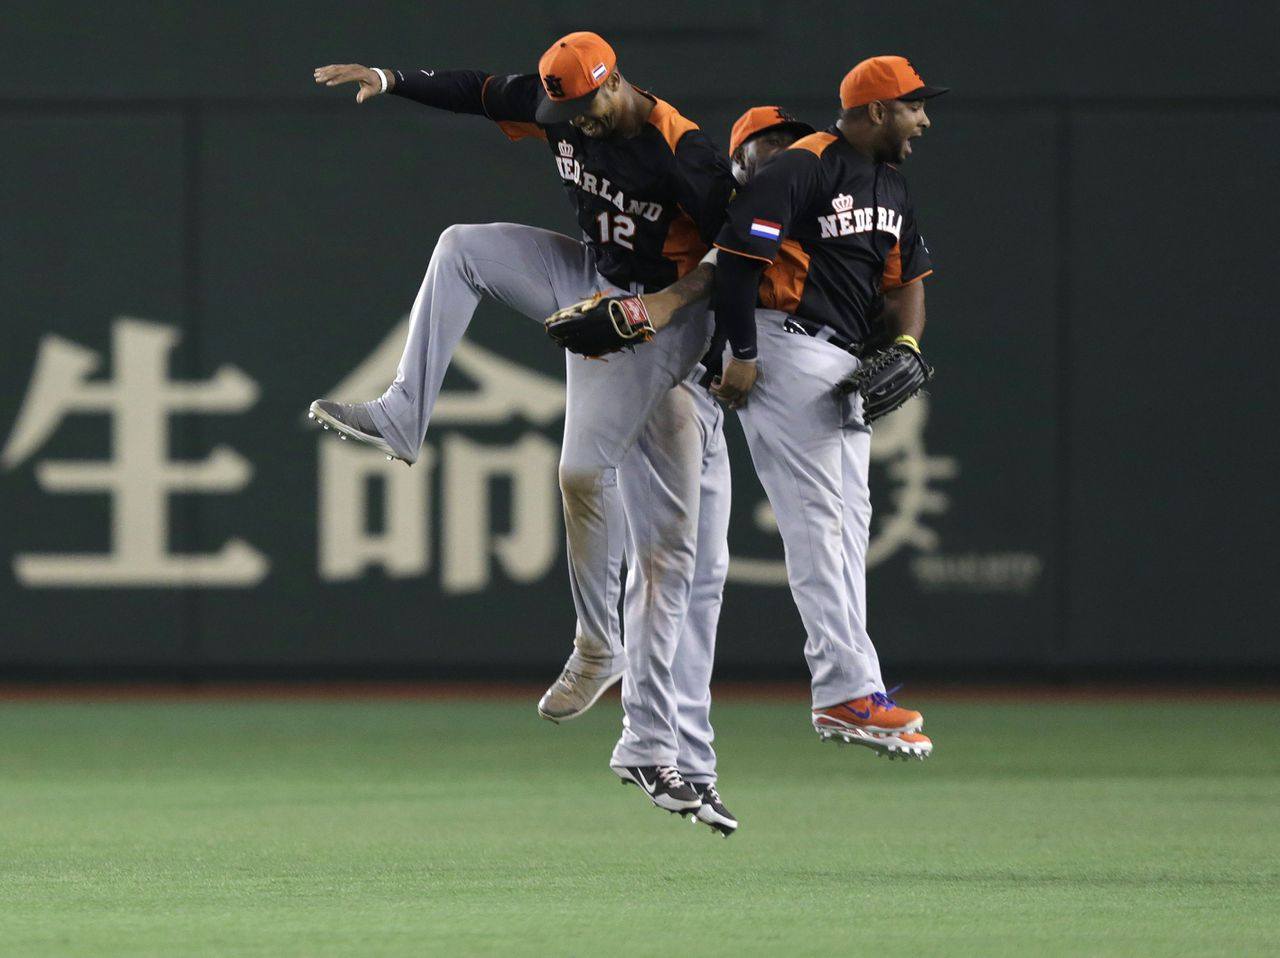 Netherlands' Wladimir Balentien (R), Roger Bernadina (C) and Kalian Sams celebrate after defeating Cuba at the World Baseball Classic (WBC) second round game in Tokyo March 8, 2013. REUTERS/Toru Hanai (JAPAN - Tags: SPORT BASEBALL)